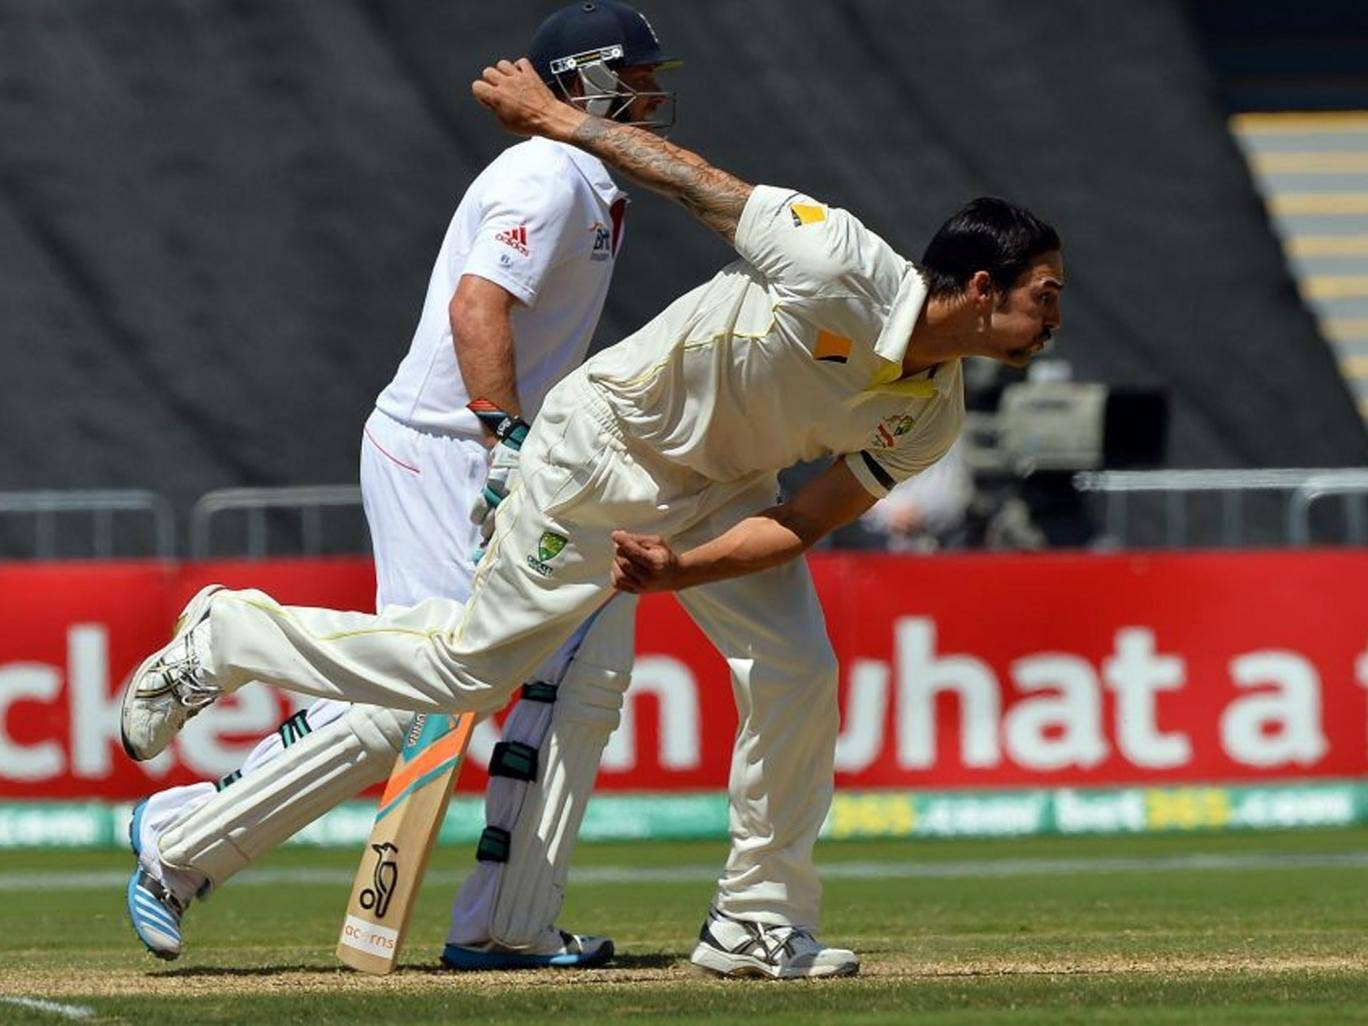 Bowlers like Mitchell Johnson appear able to harness the energy at the ground and convert it into a wave of menace and momentum that washes away batsmen